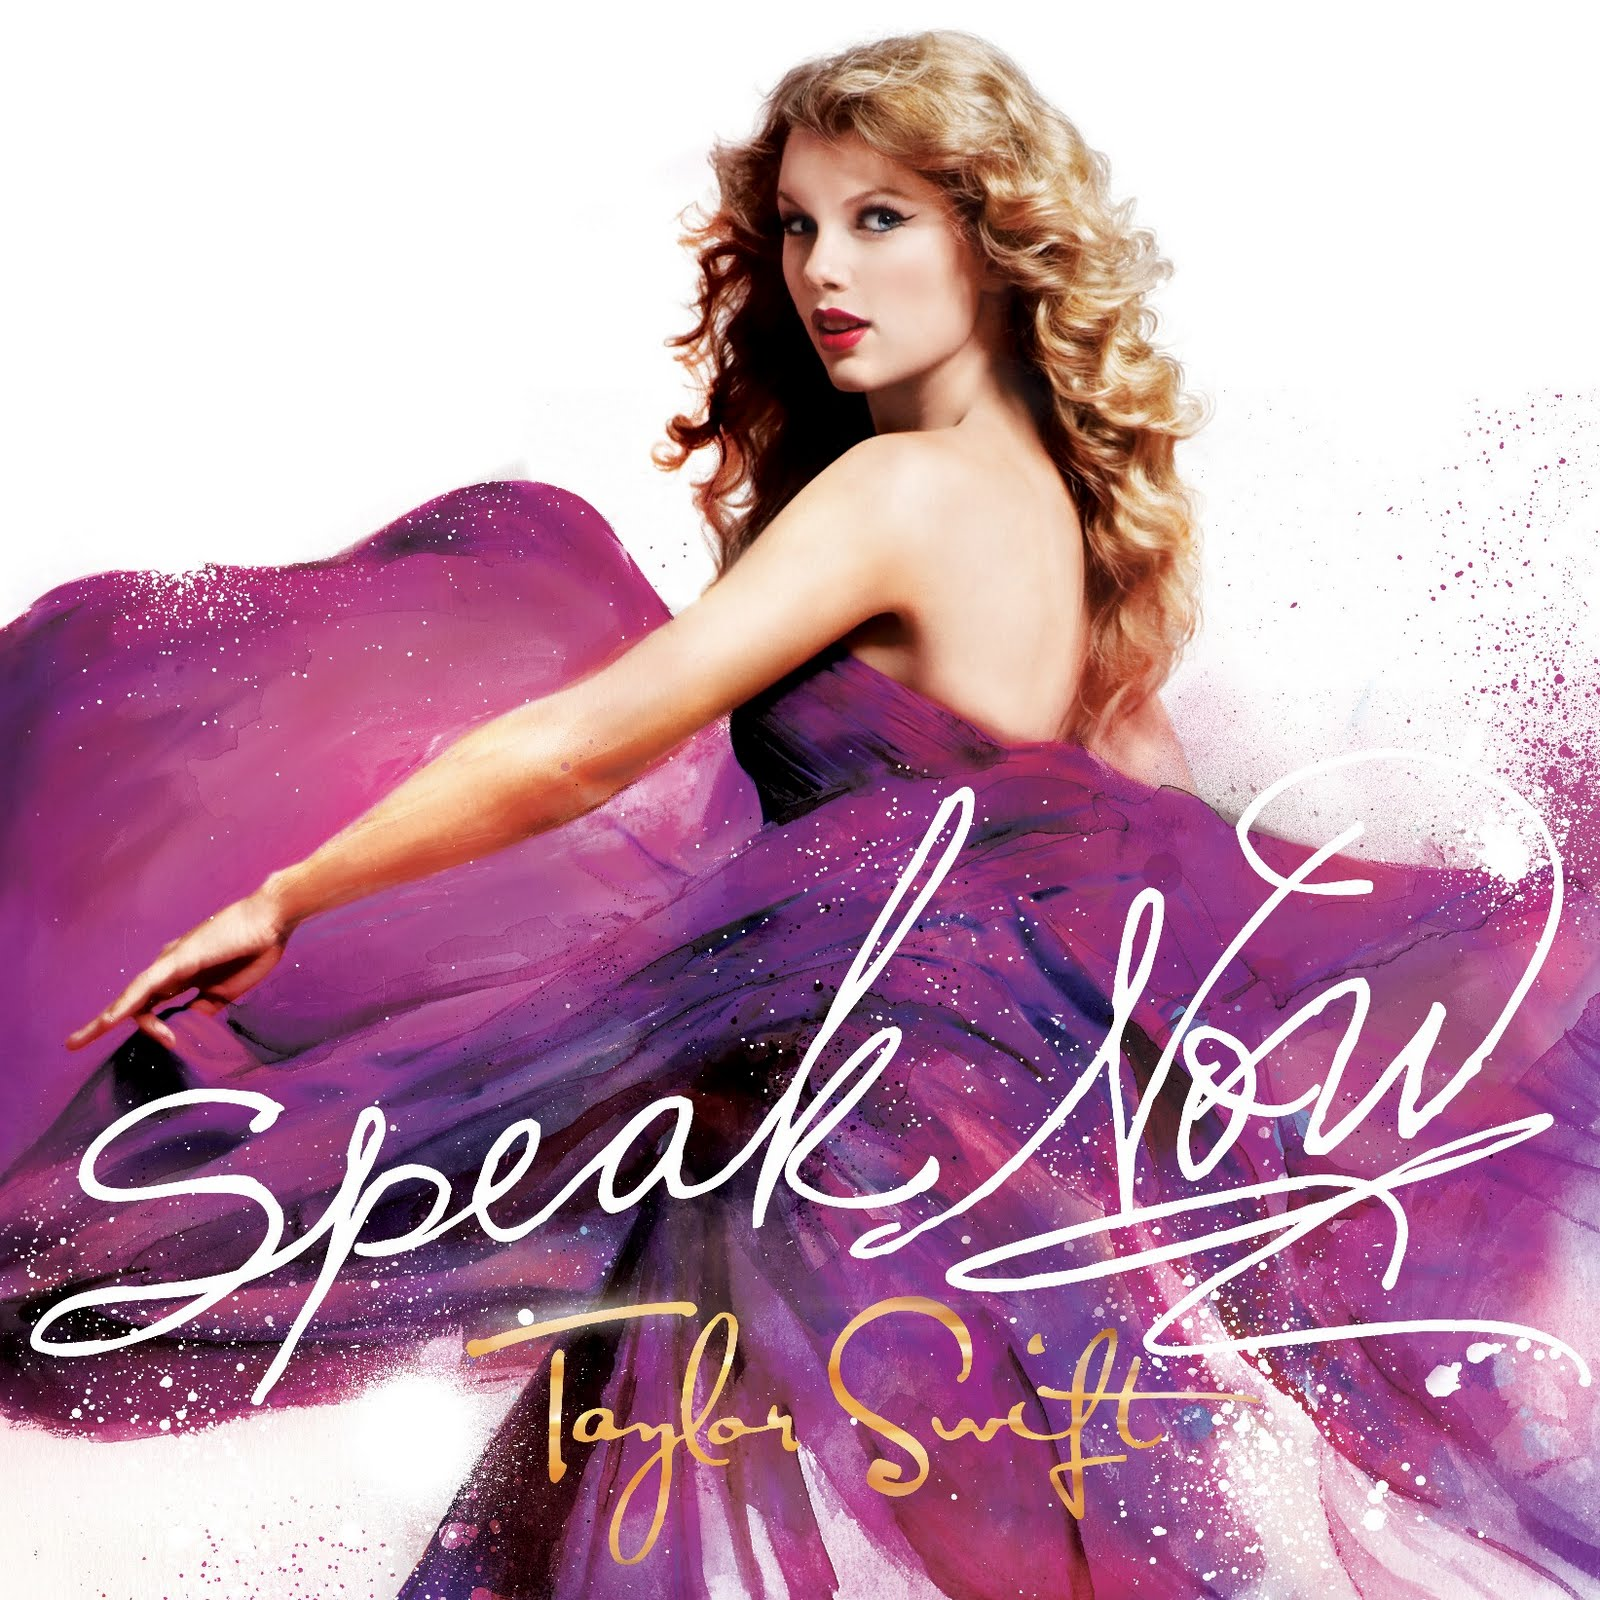 http://4.bp.blogspot.com/_DO6EXDeoOGI/TMW3Oq3GQ5I/AAAAAAAAACk/sUB0yMRiJIk/s1600/taylor-swift_speak-now-lg.jpg